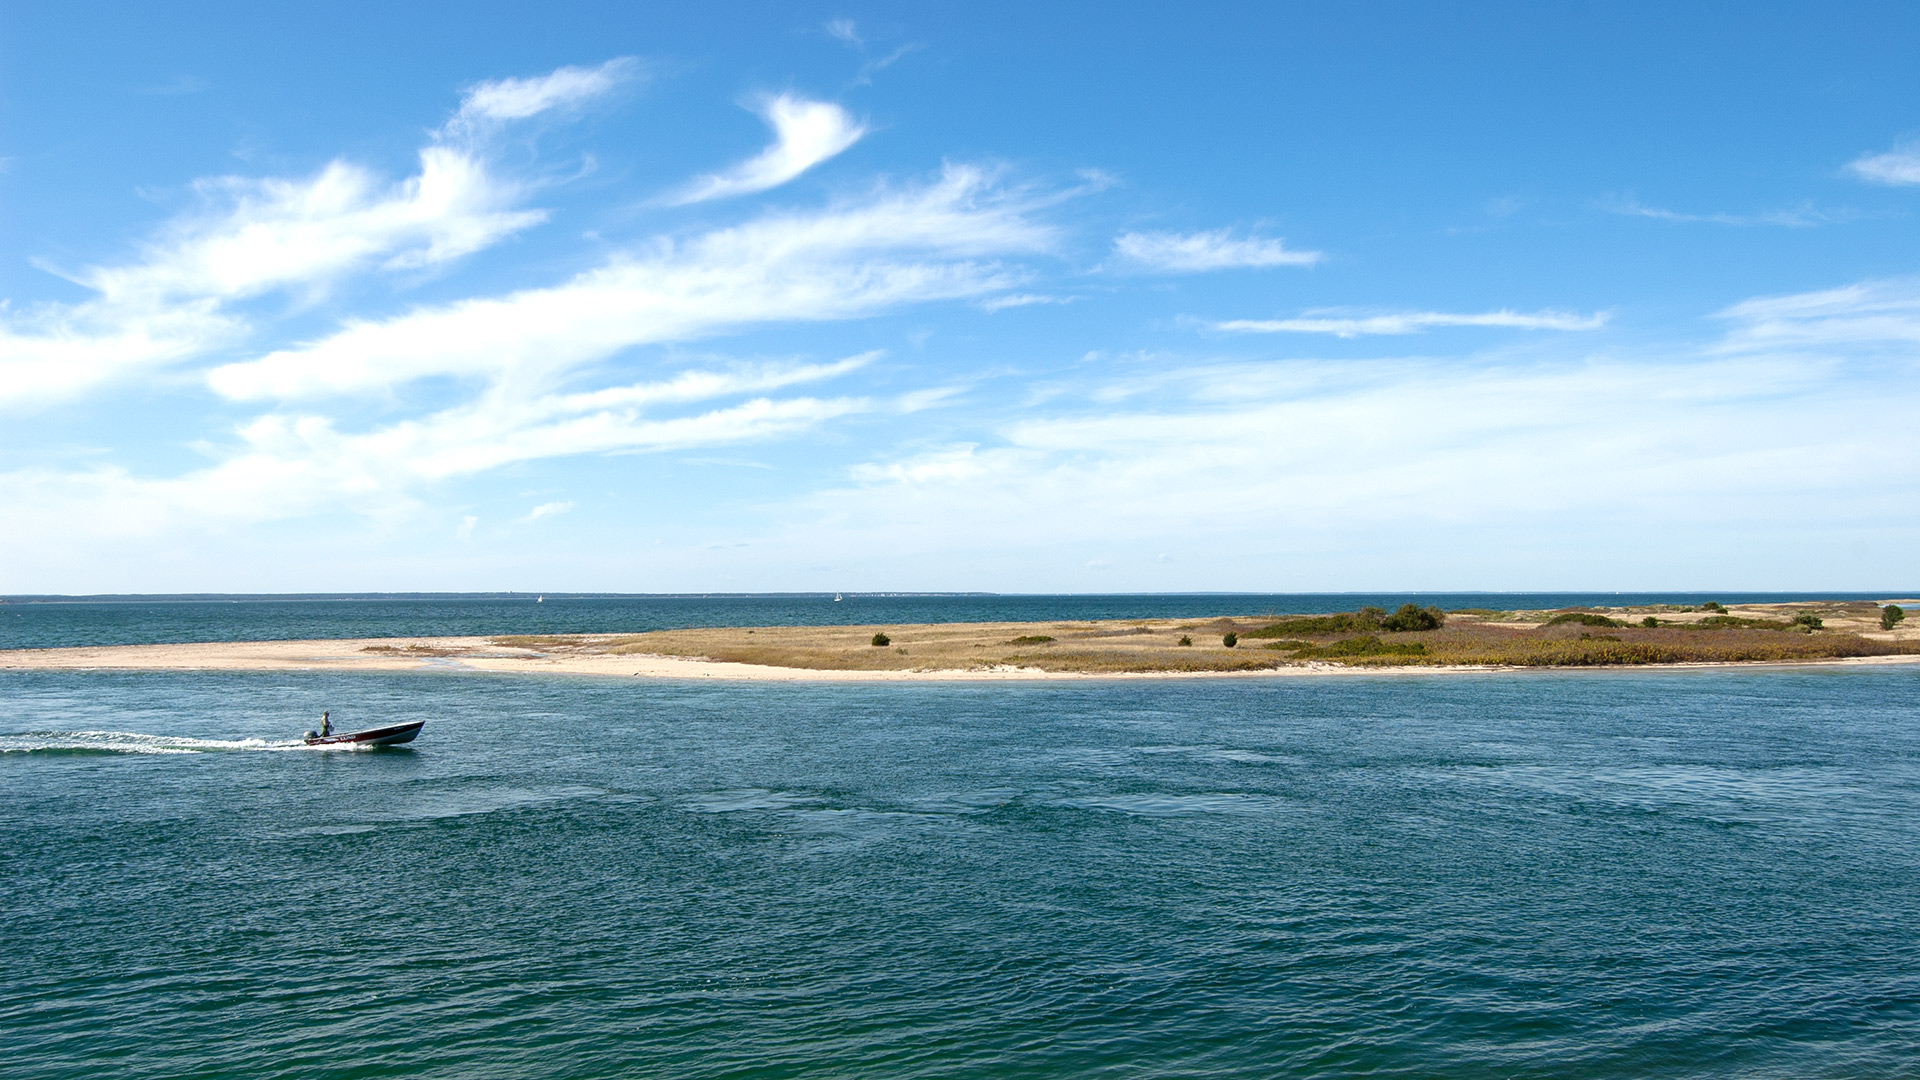 Chappaquiddick, Martha's Vineyard